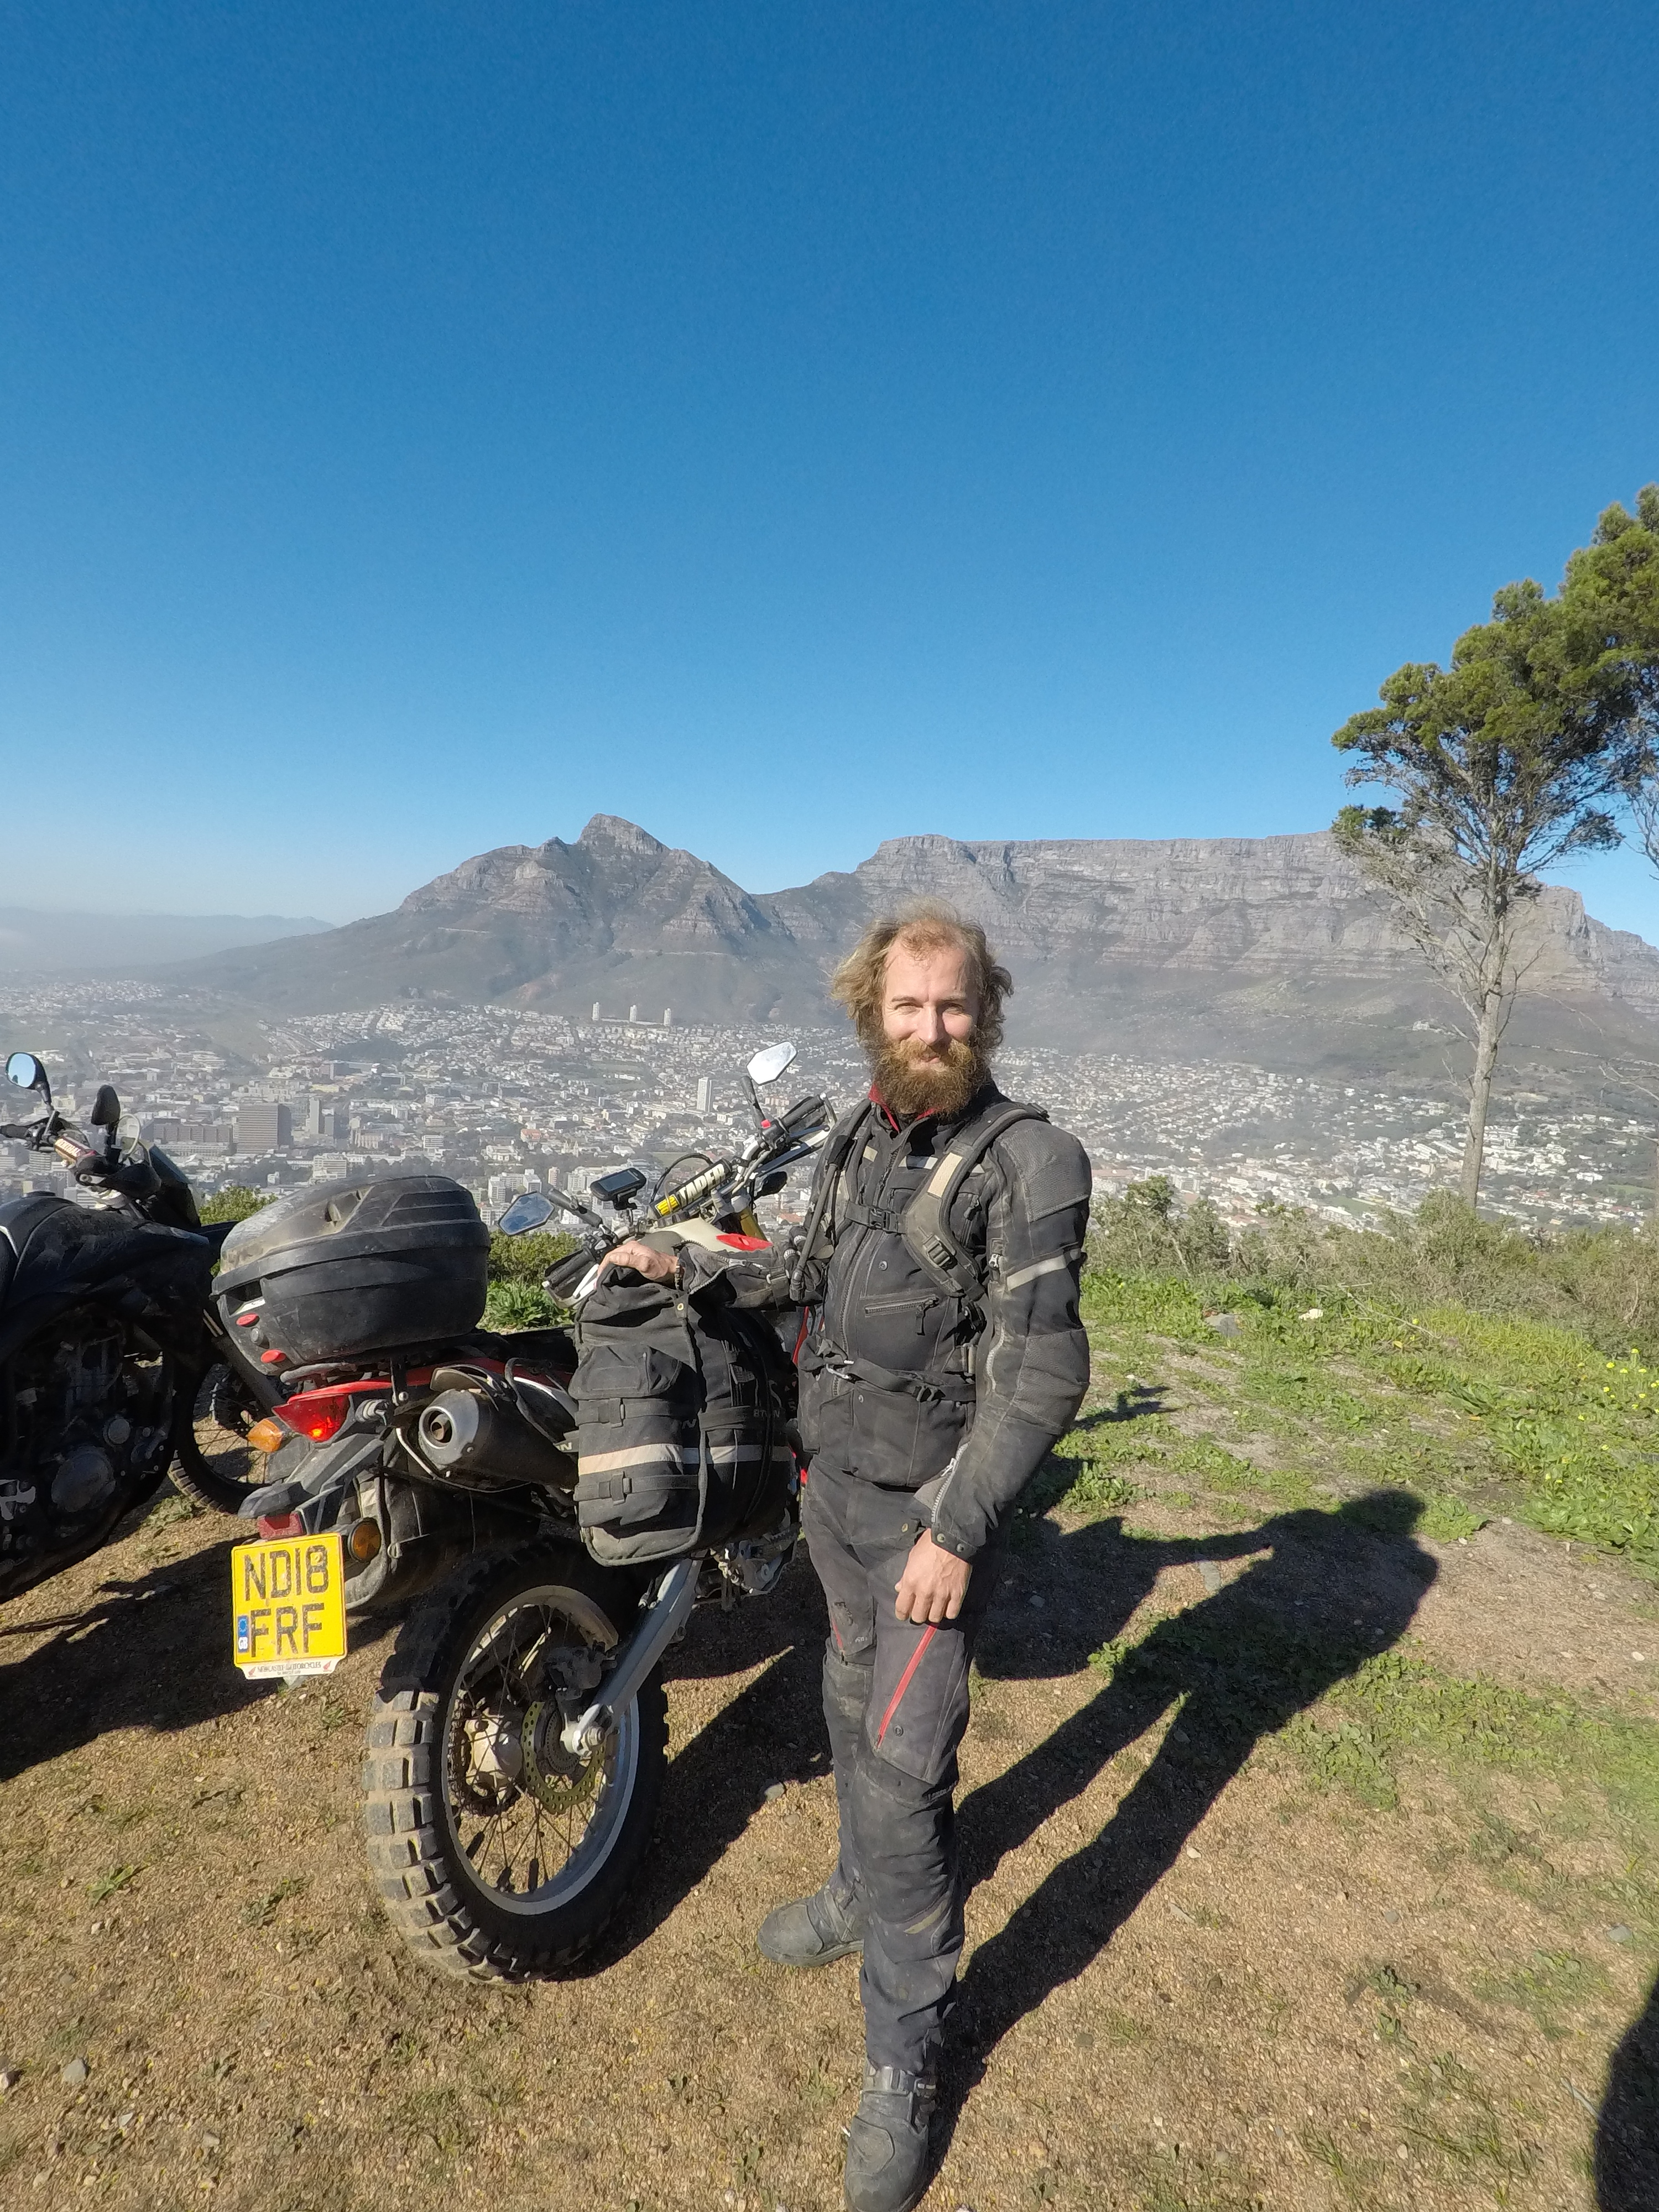 At Signal Hill, Cape Town, South Africa. Fantastic view across Cape Town.